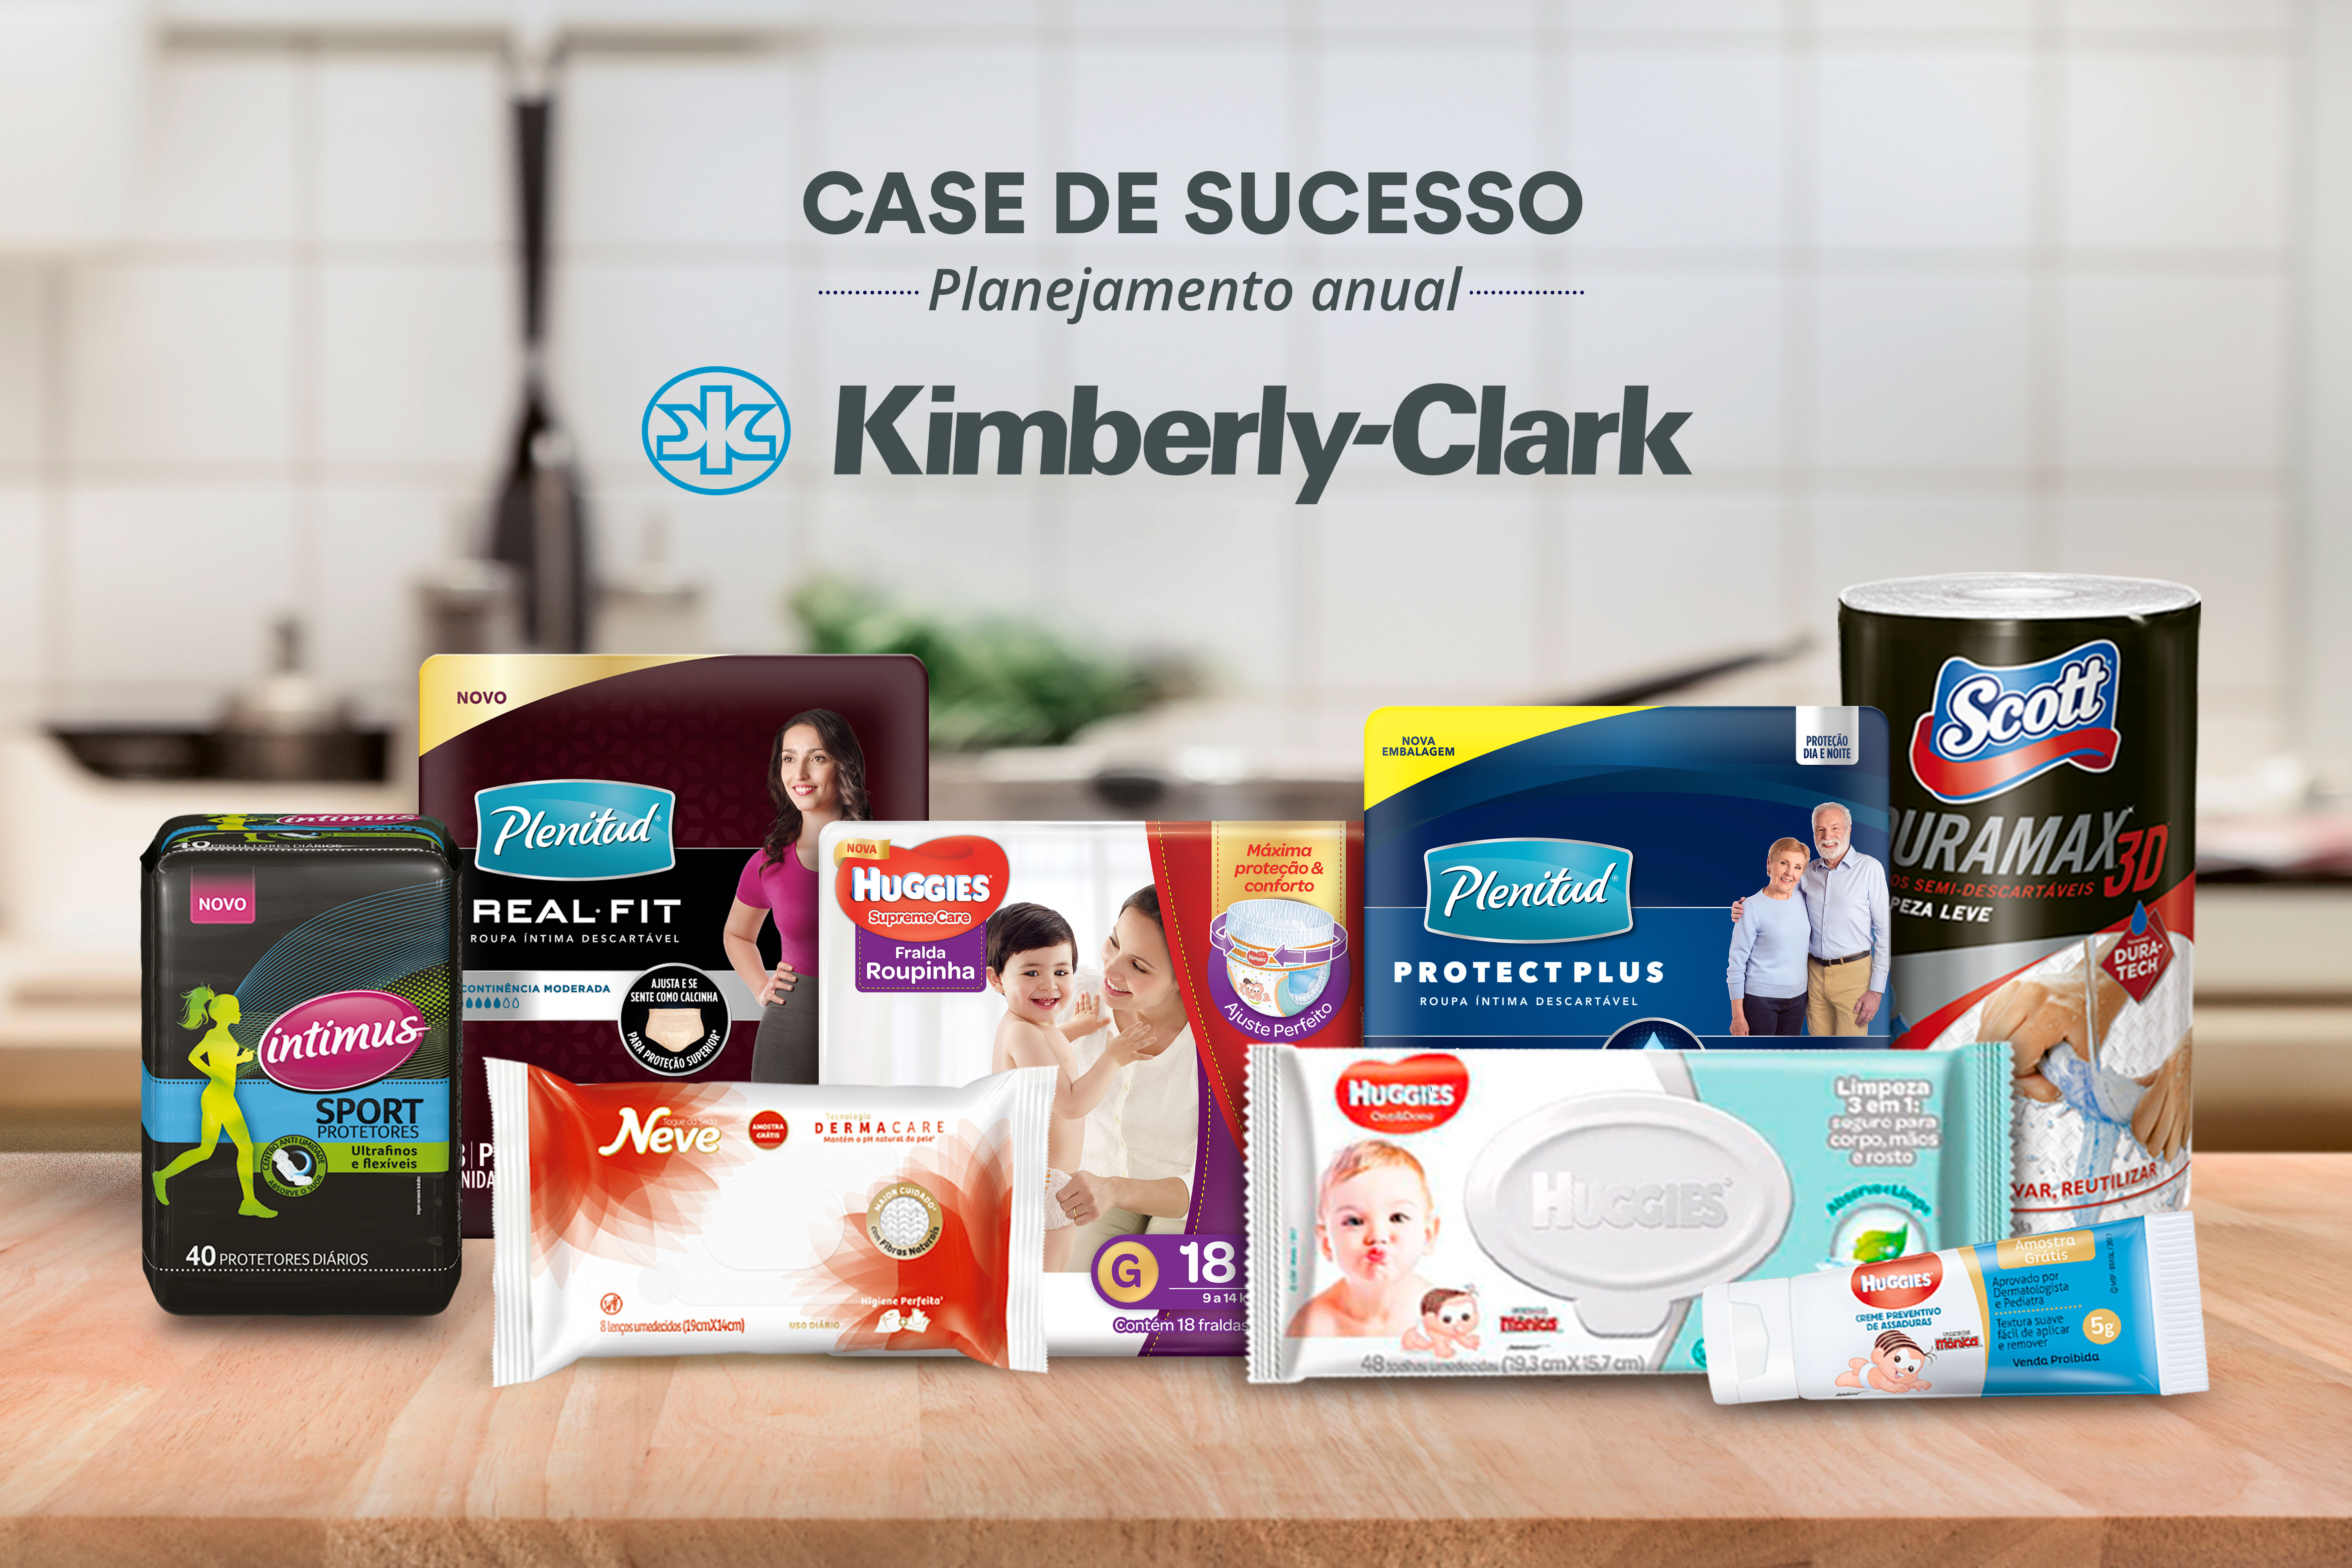 Case de Sucesso — Samplify e Kimberly-Clark